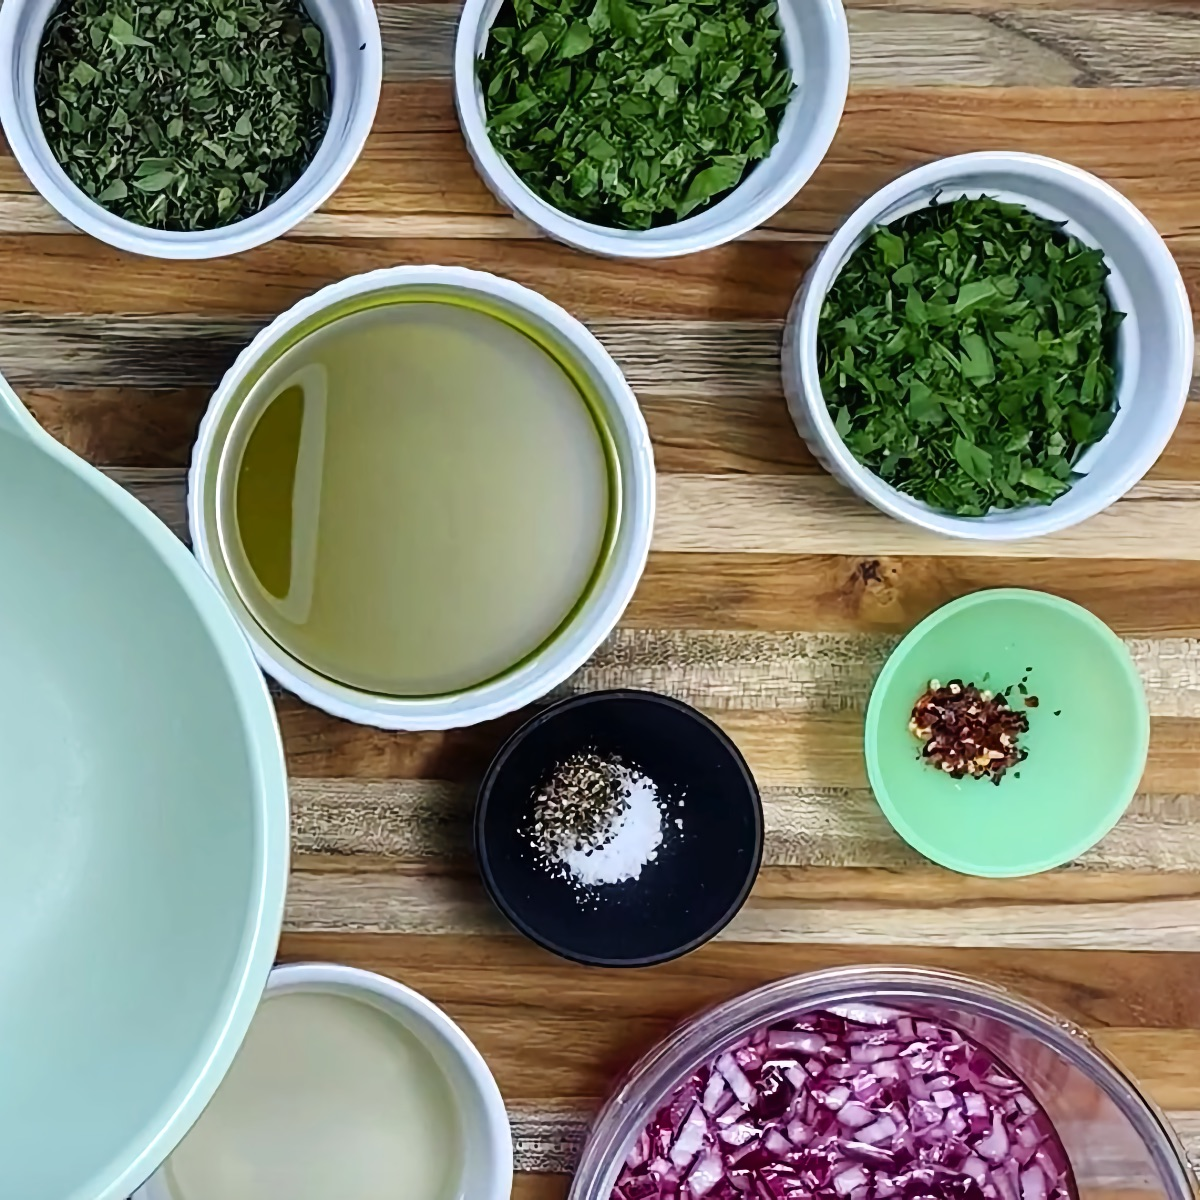 Ingredients for the chimichurri sauce. Clockwise from top left: oregano, parsley, cilantro, red pepper flake, pickled red onion, rice vinegar, salt and pepper, extra virgin olive oil.